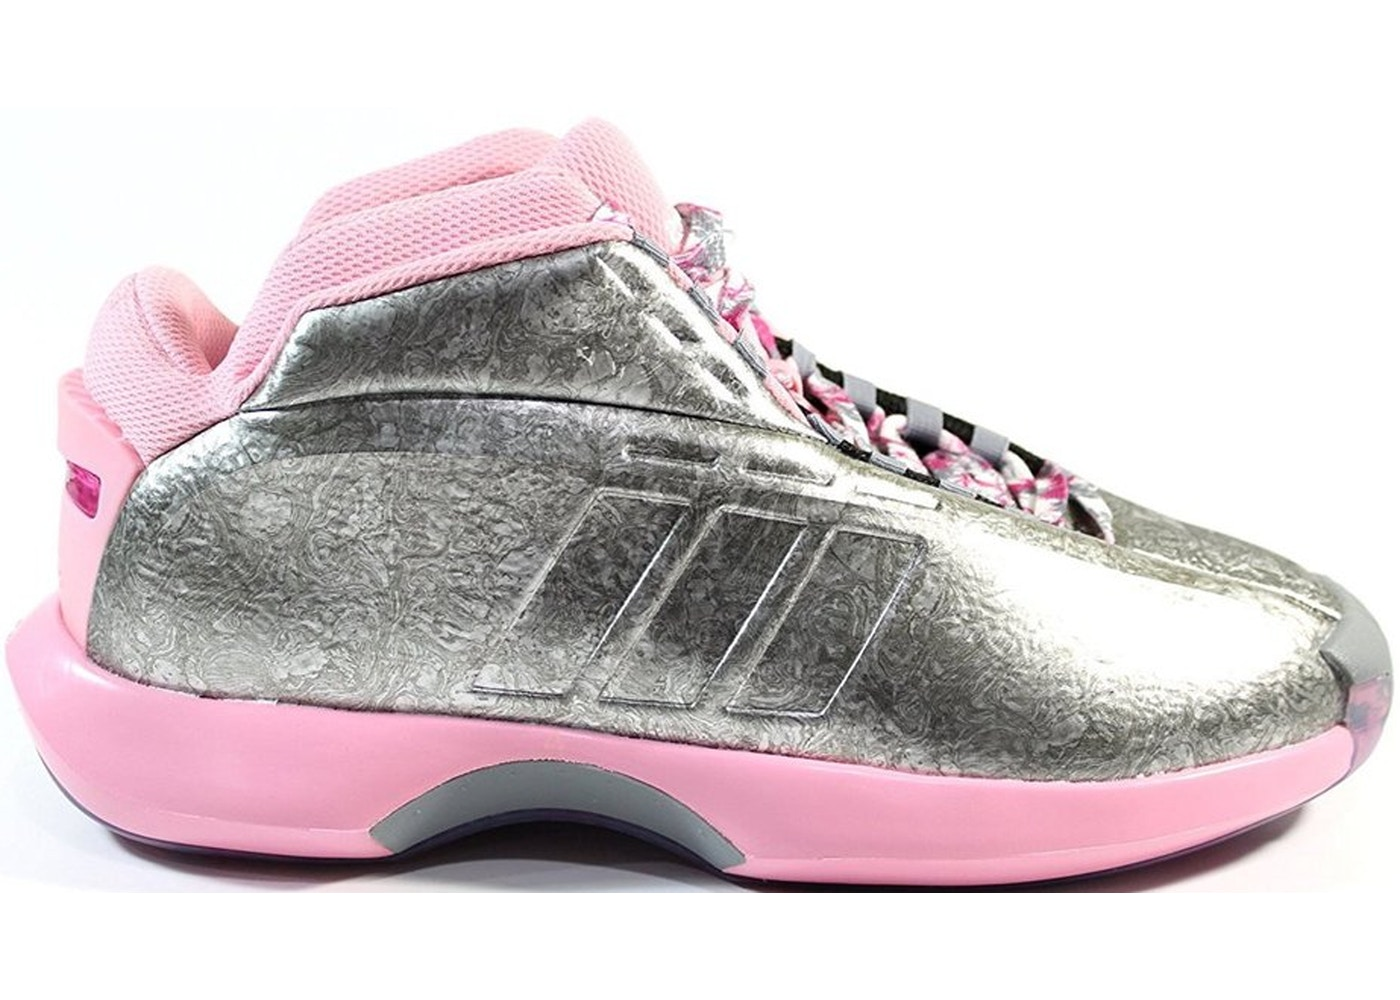 new arrival a8aa2 aeee7 adidas Crazy 1 Florist John Wall